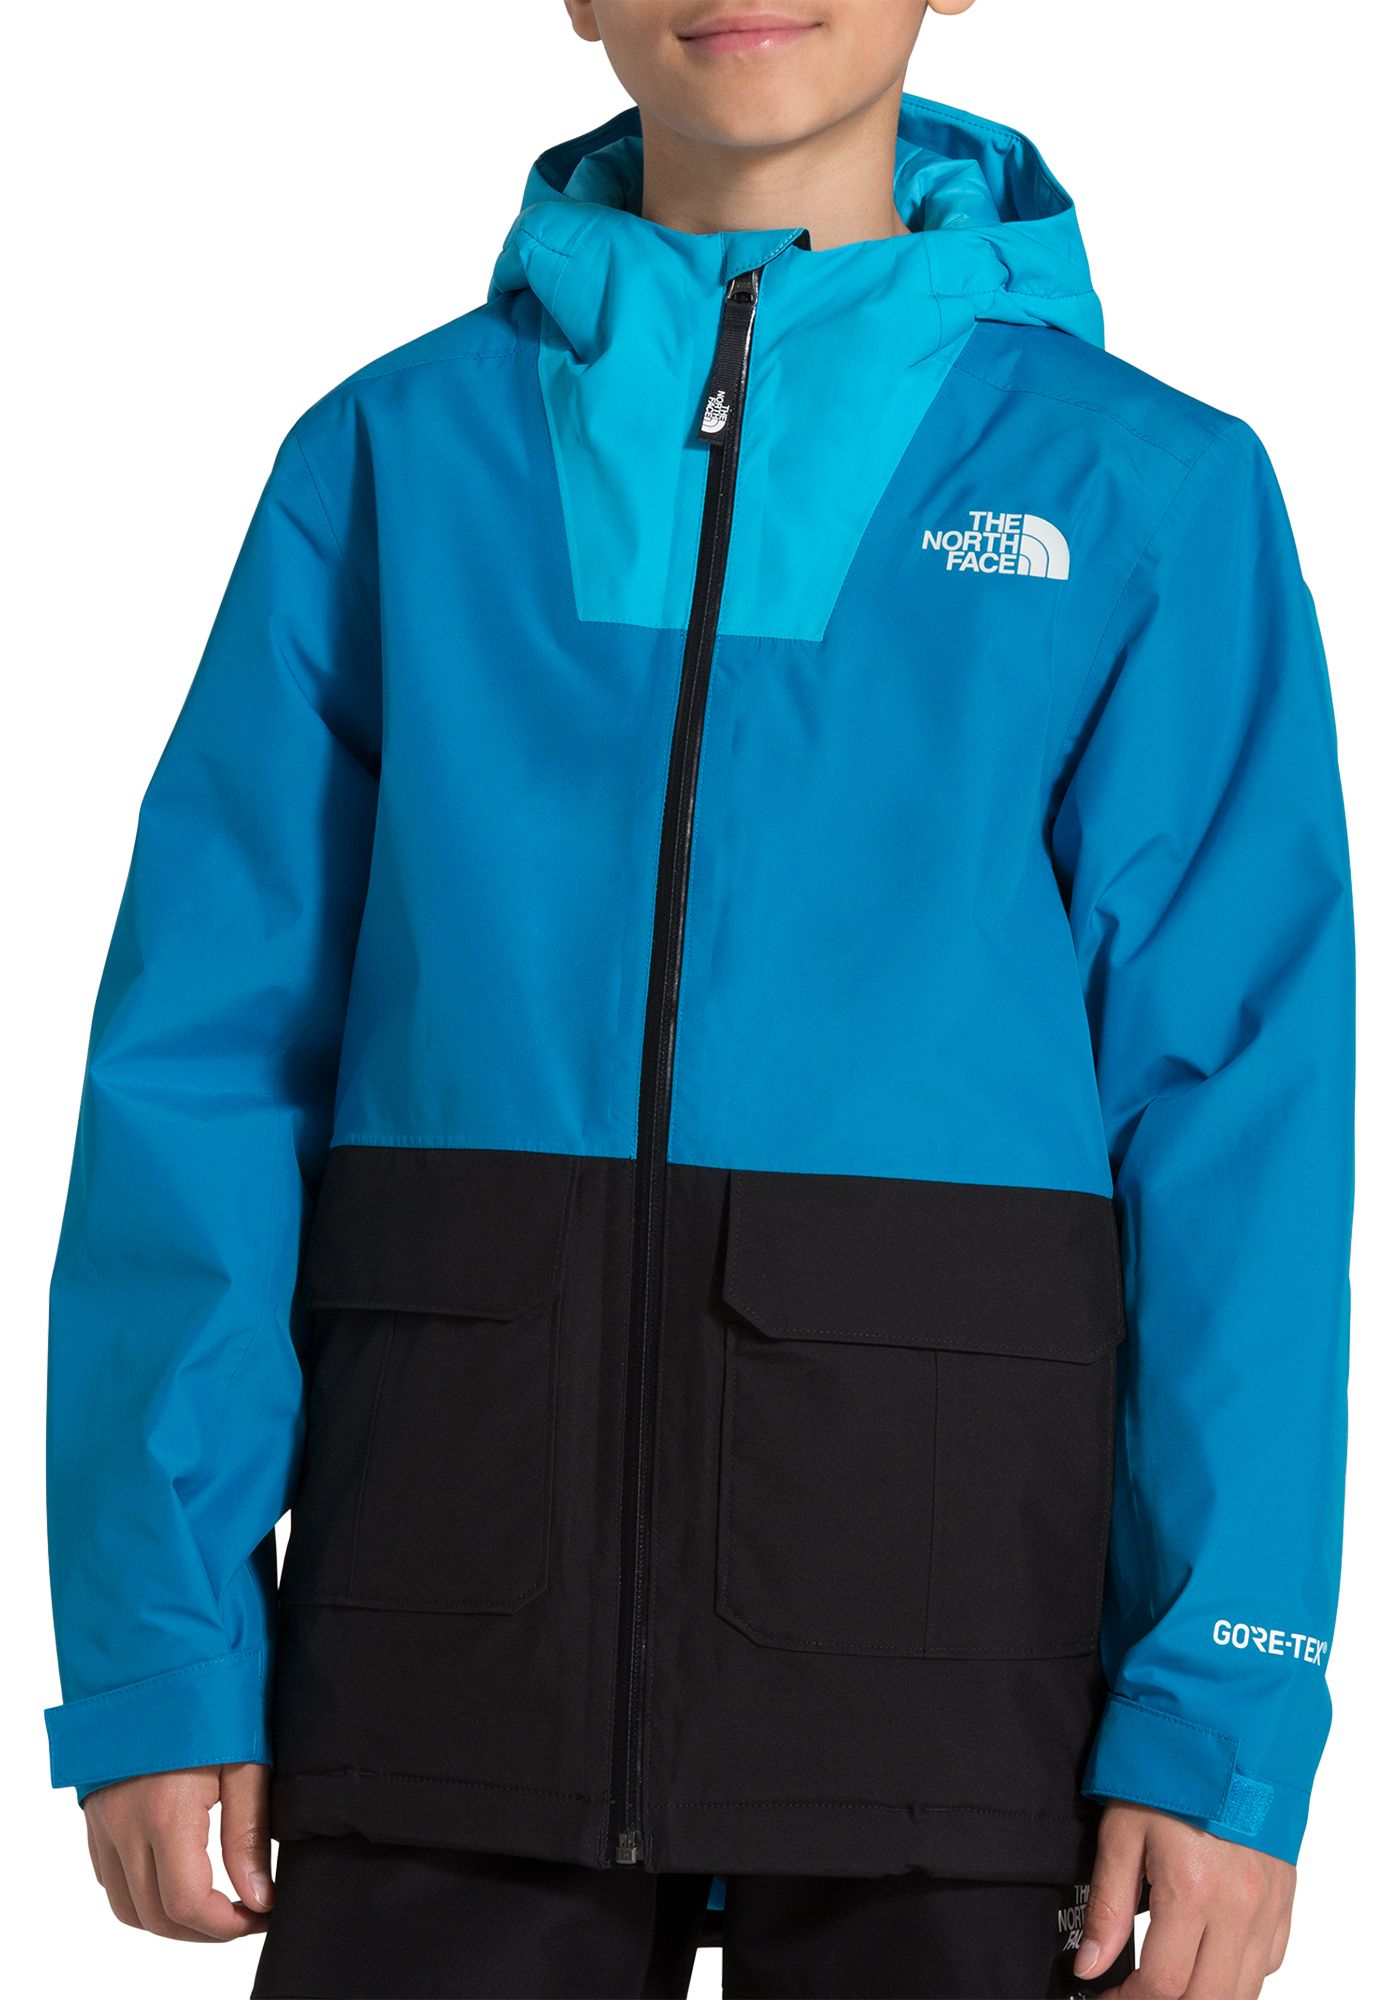 The North Face Youth Pow Insulated Jacket